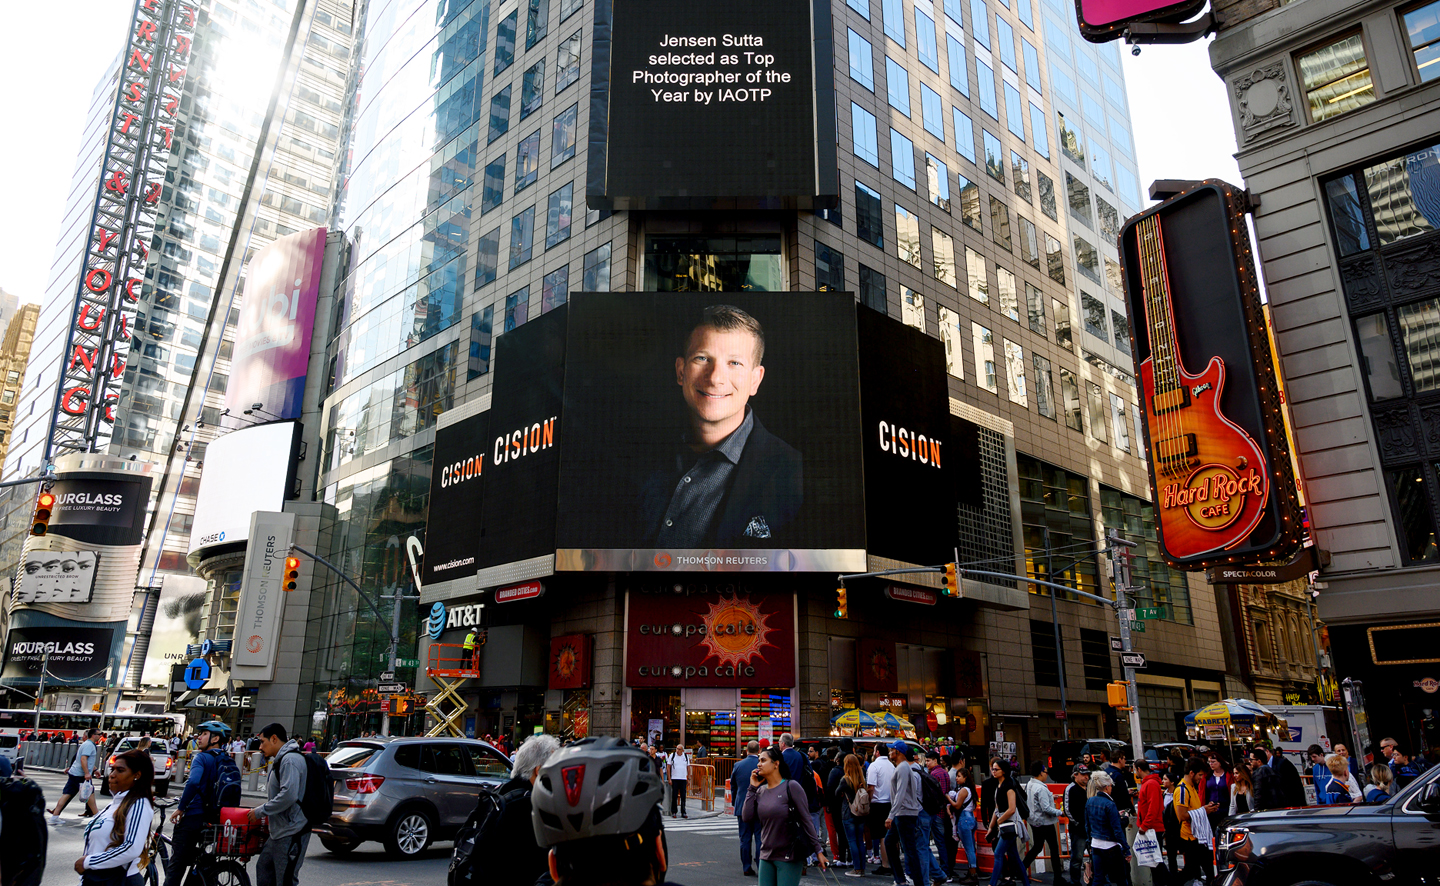 IAOTP Top Photographer of the Year Jensen Sutta Event Photography Times Square